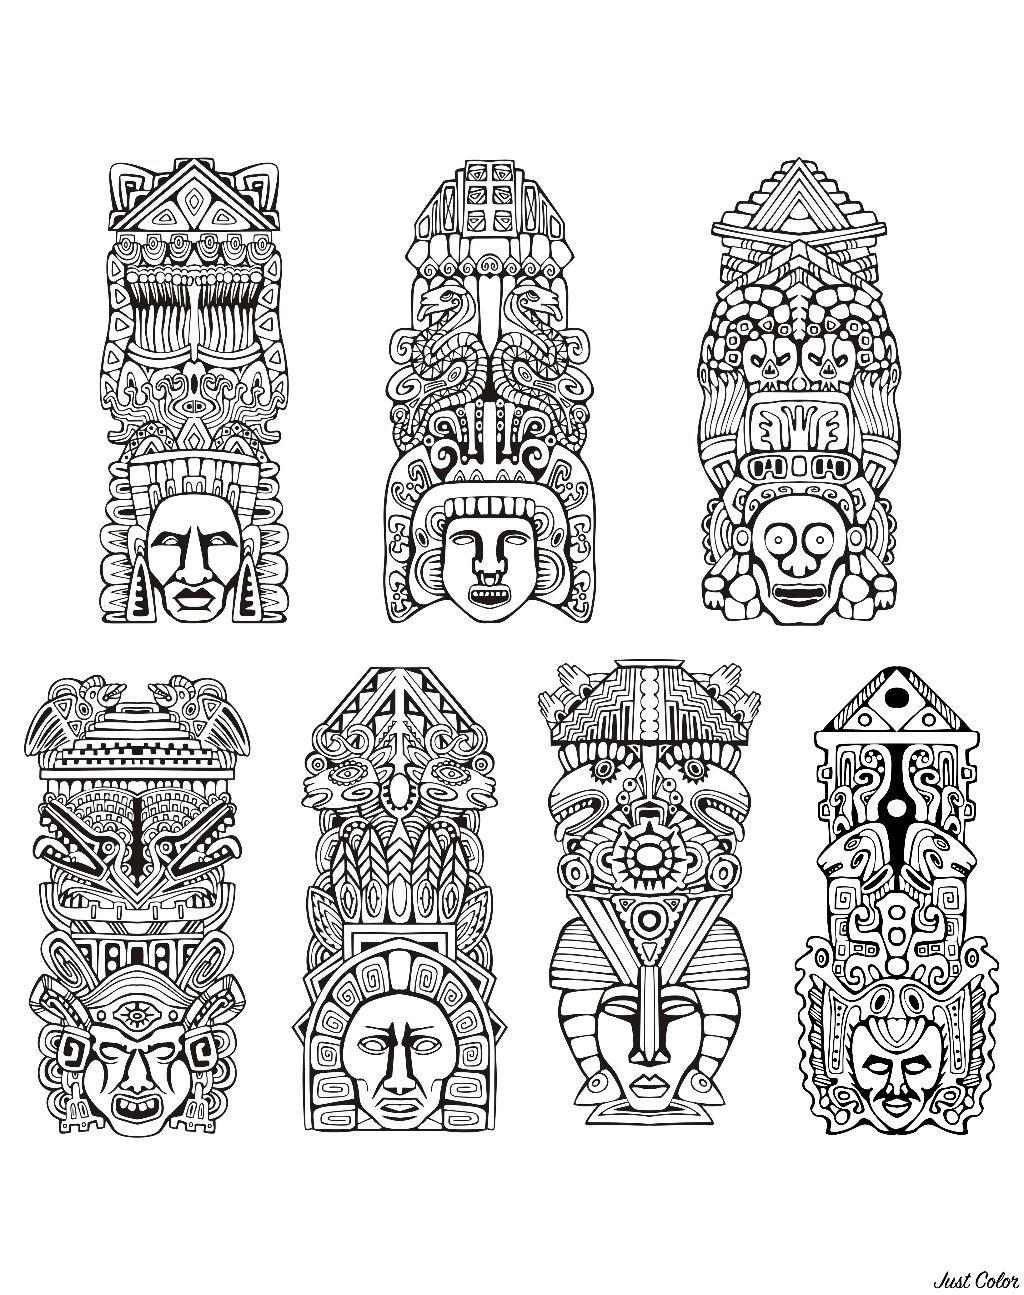 Totems inspired by Aztecs, Mayans and Incas